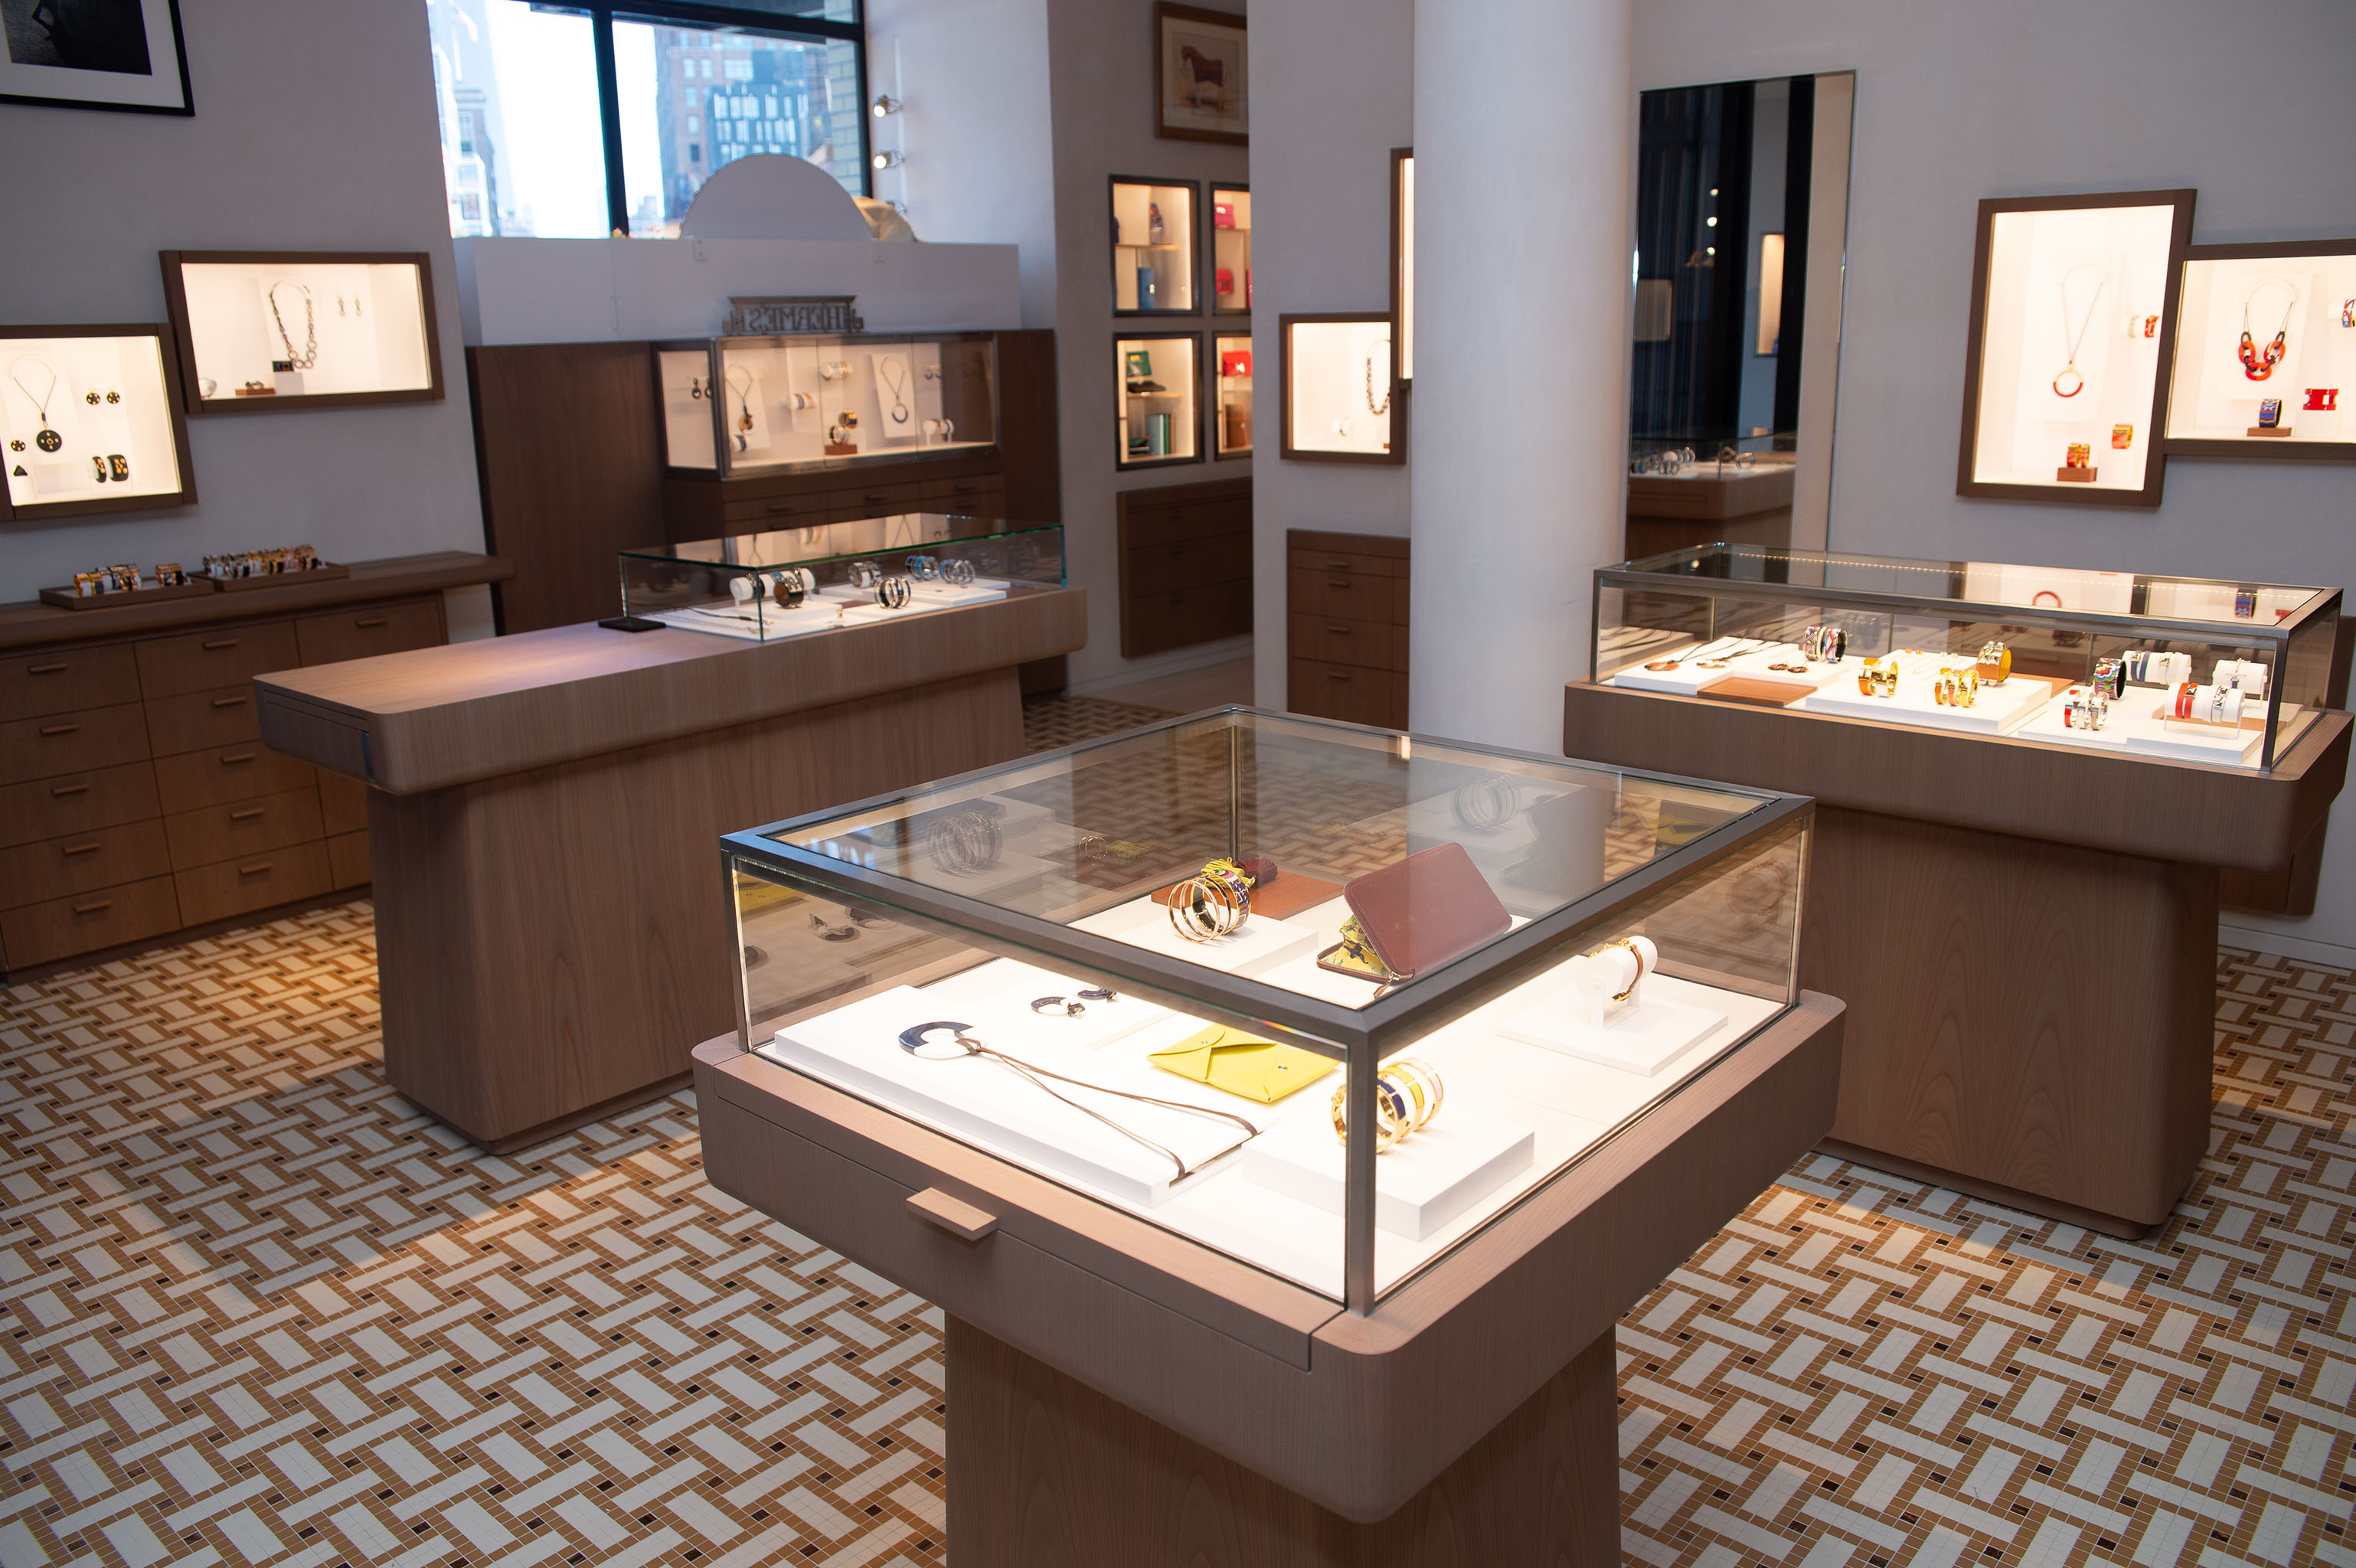 Hermès opened a store in Manhattan's Meatpacking District in 2019.